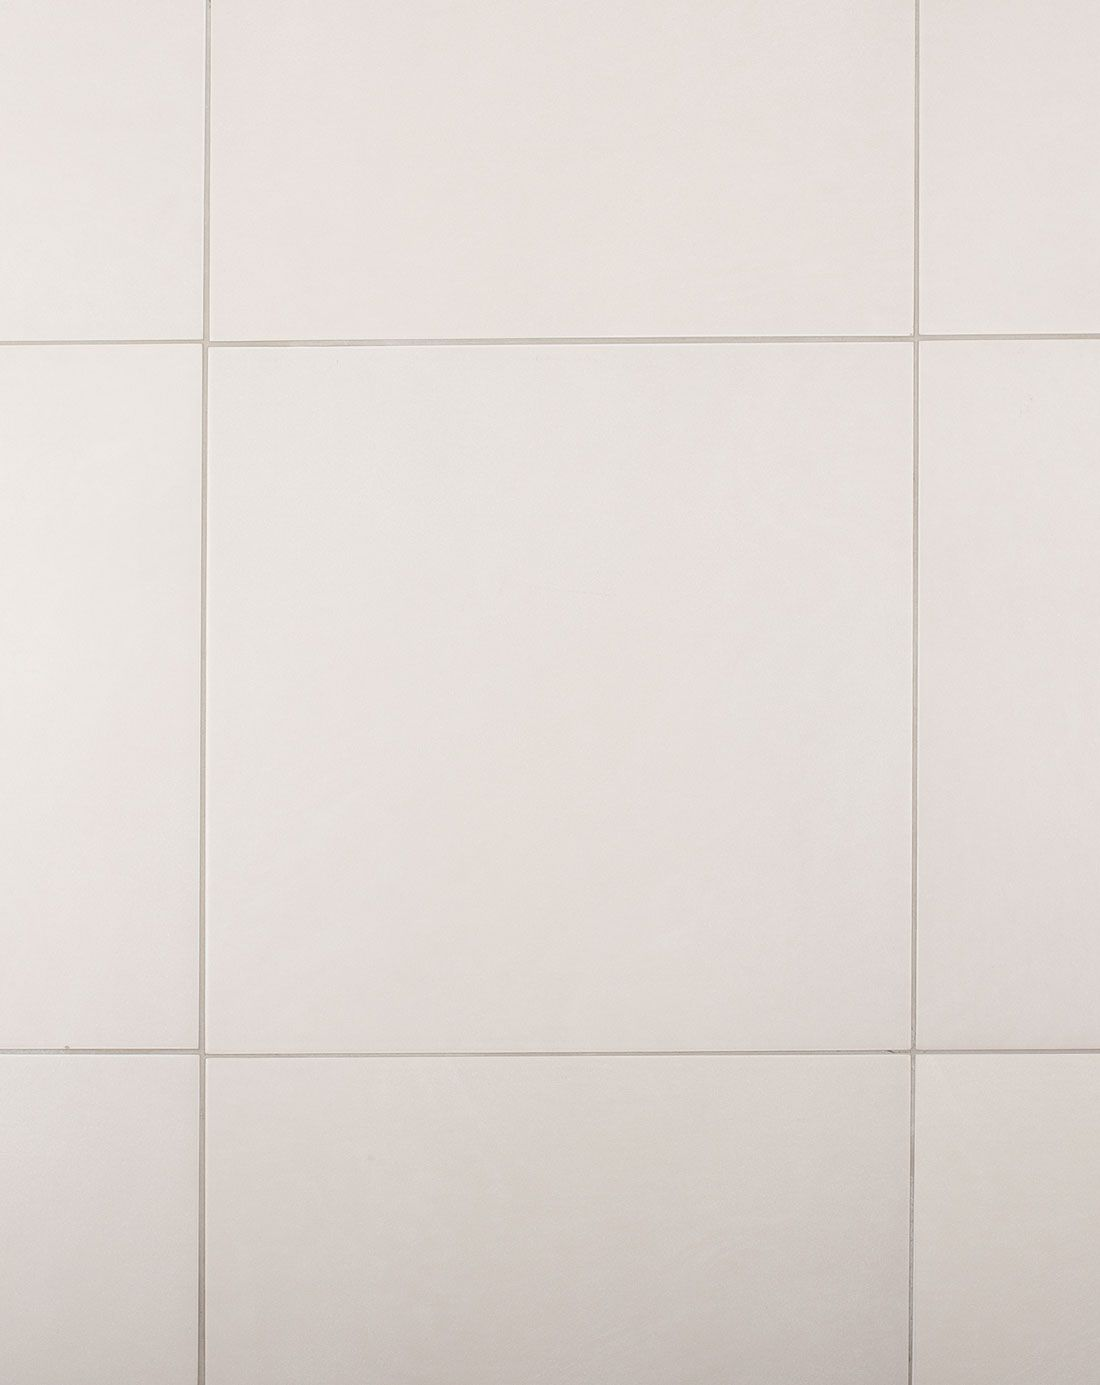 Urban perola kitchen floor tiles a creamy pearl coloured hard urban perola kitchen floor tiles a creamy pearl coloured hard wearing glazed porcelain tile with dailygadgetfo Choice Image